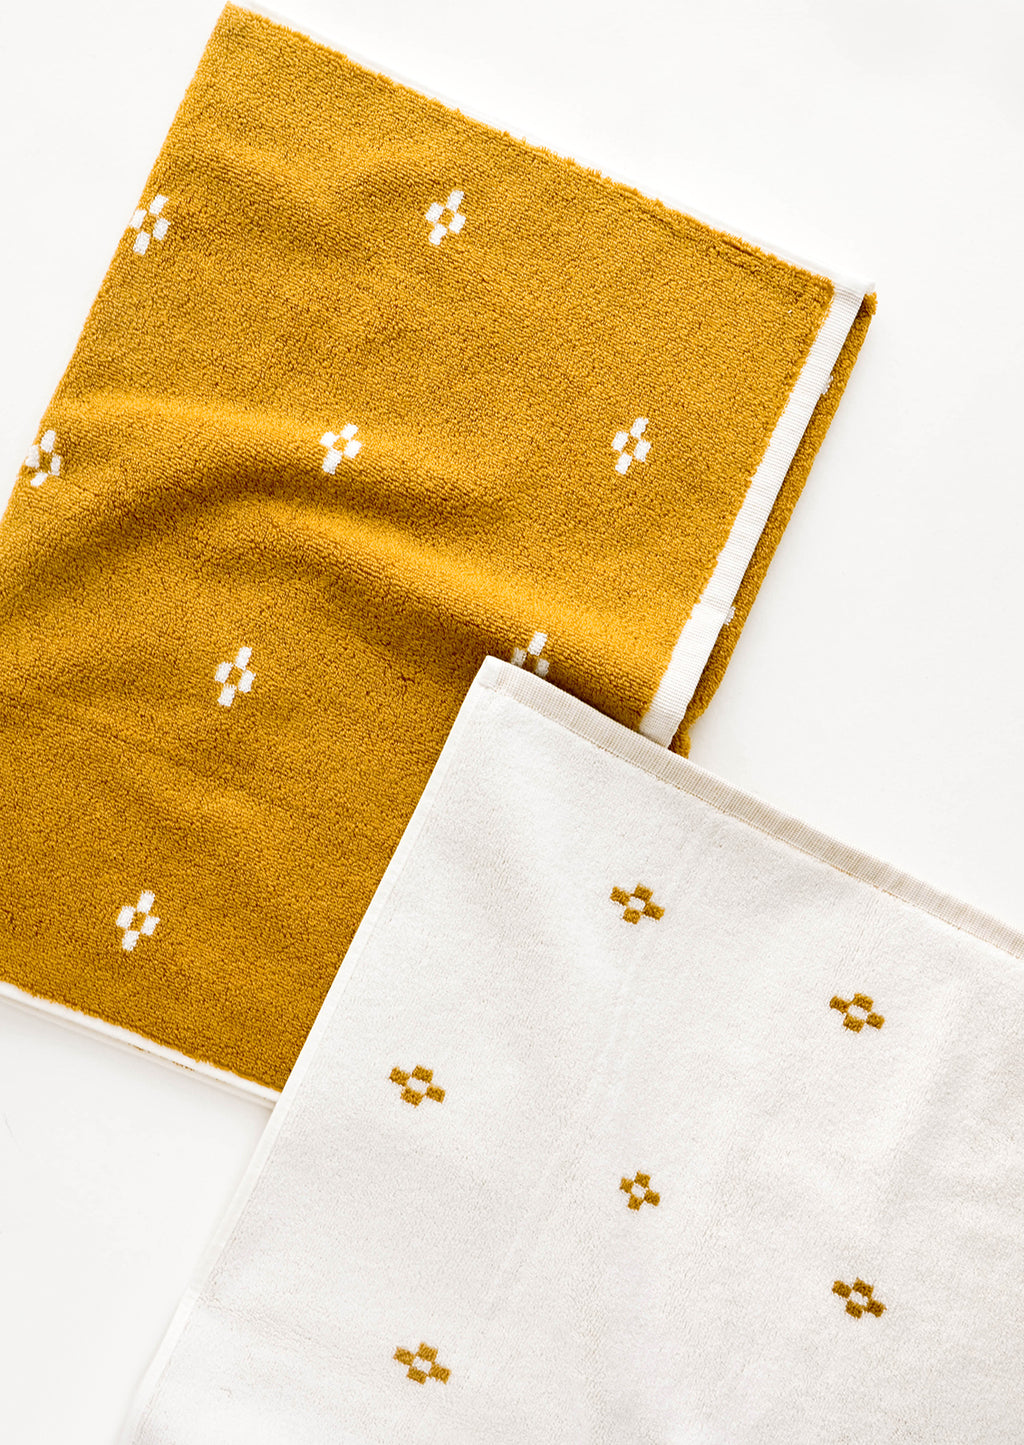 Ochre Geo / Bath Towel: Terrycloth towel set in jacquard design, mustard with geometric print